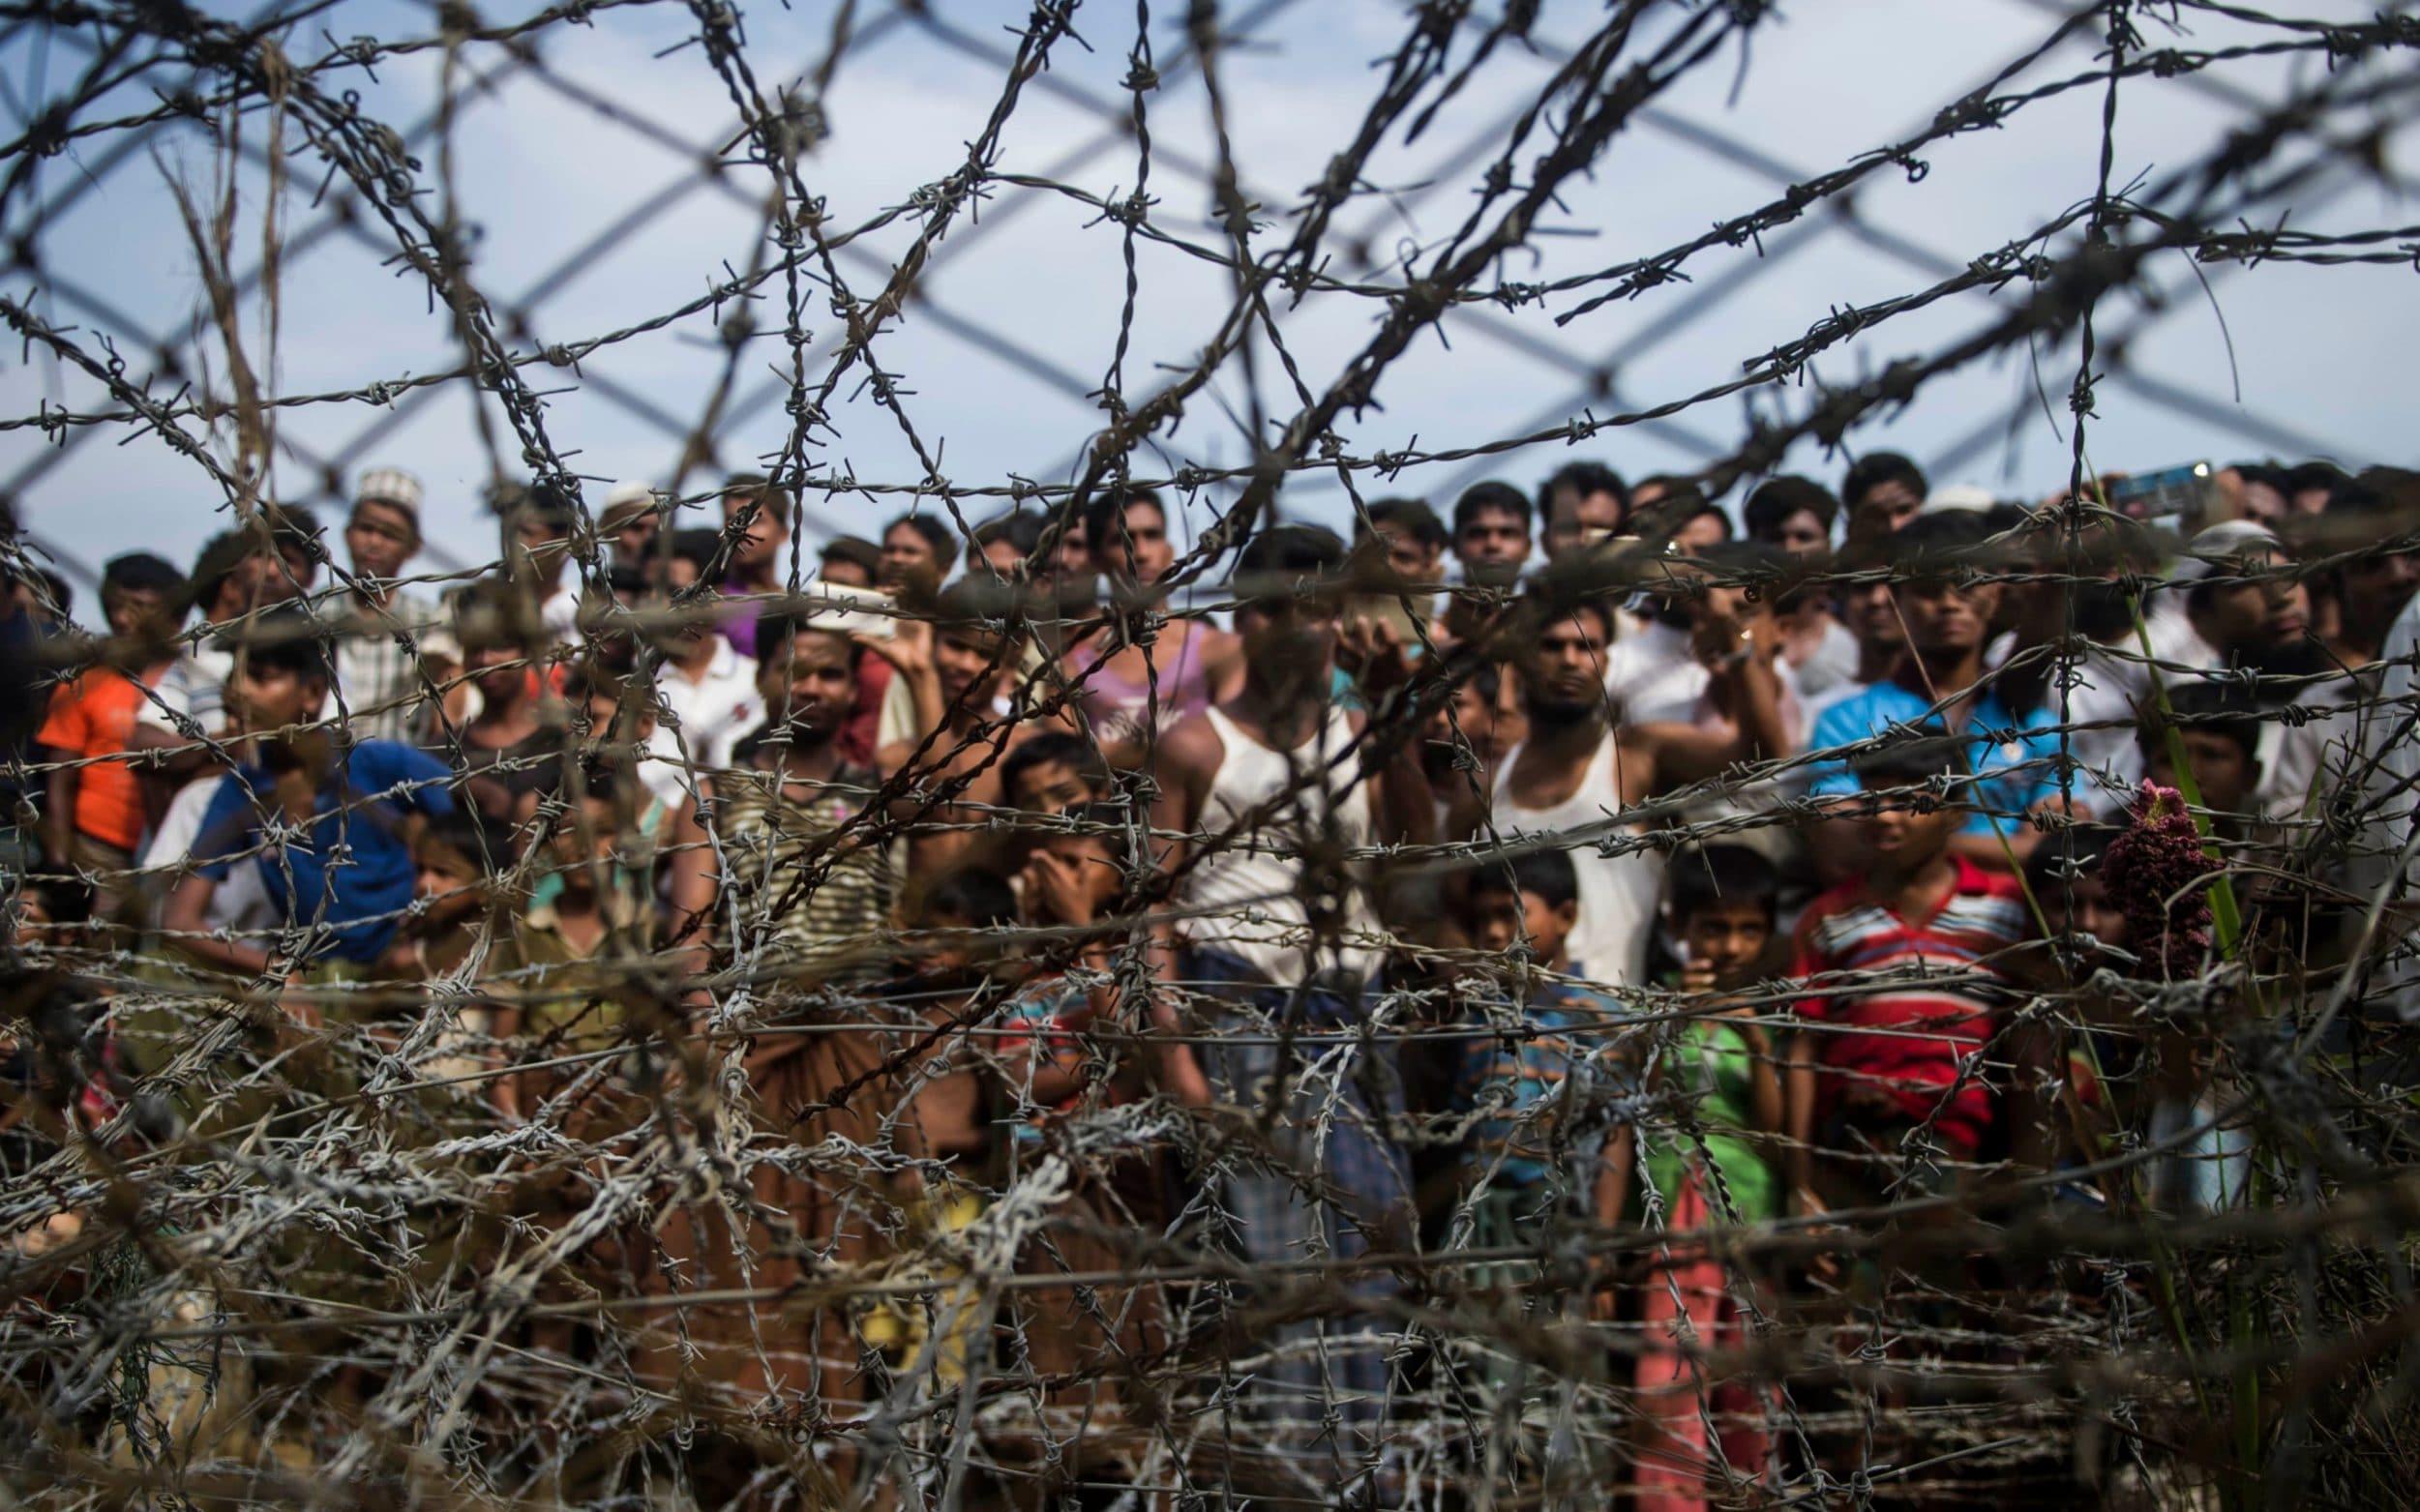 Bangladesh to build barbed wire fences around Rohingya camps